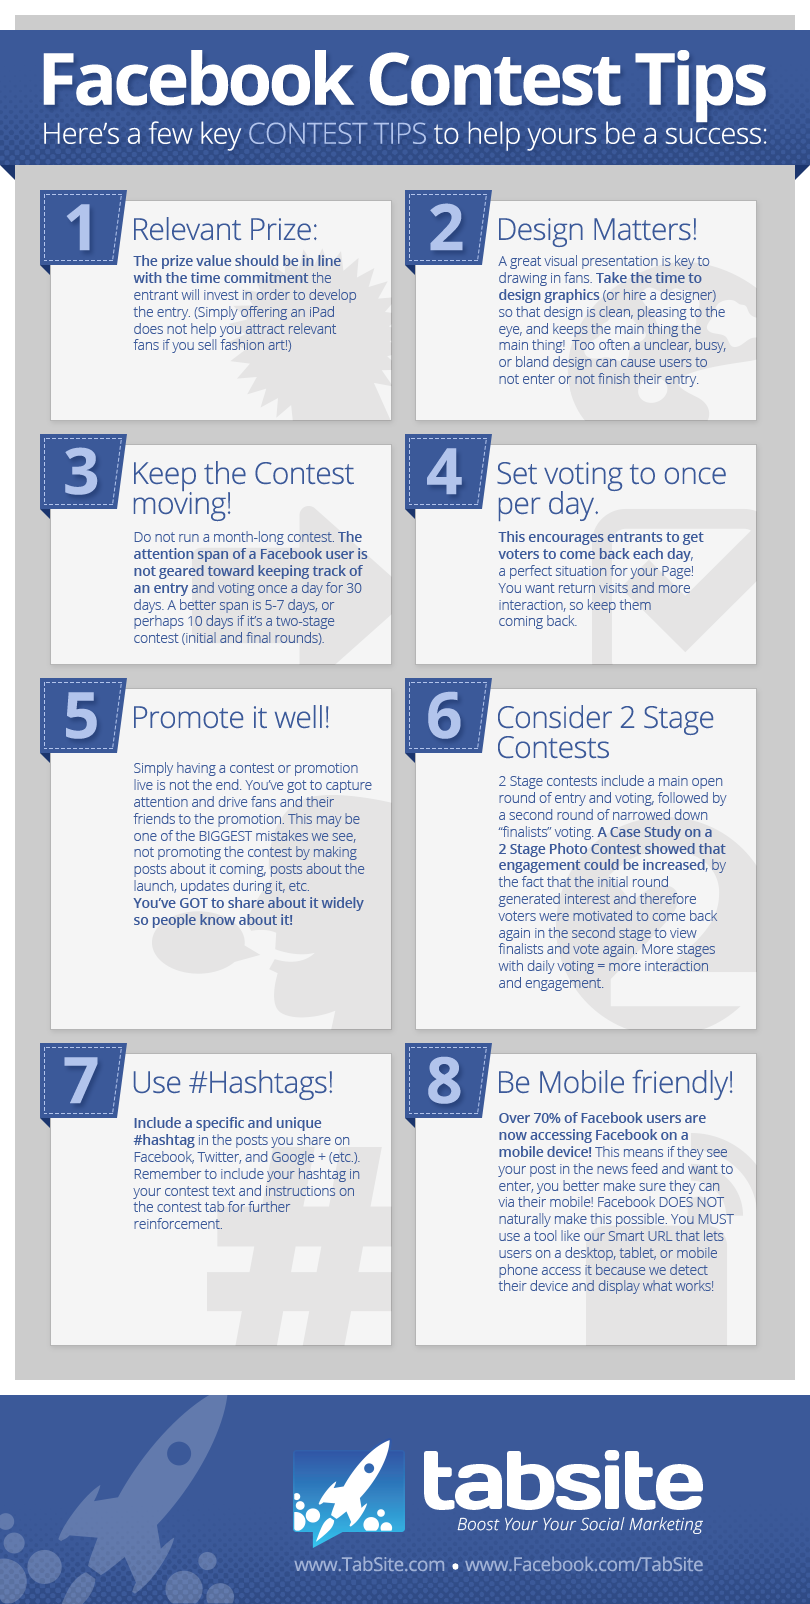 Facebook Contest Tips INFOGRAPHIC 8 Facebook Contest Success Tips INFOGRAPHIC